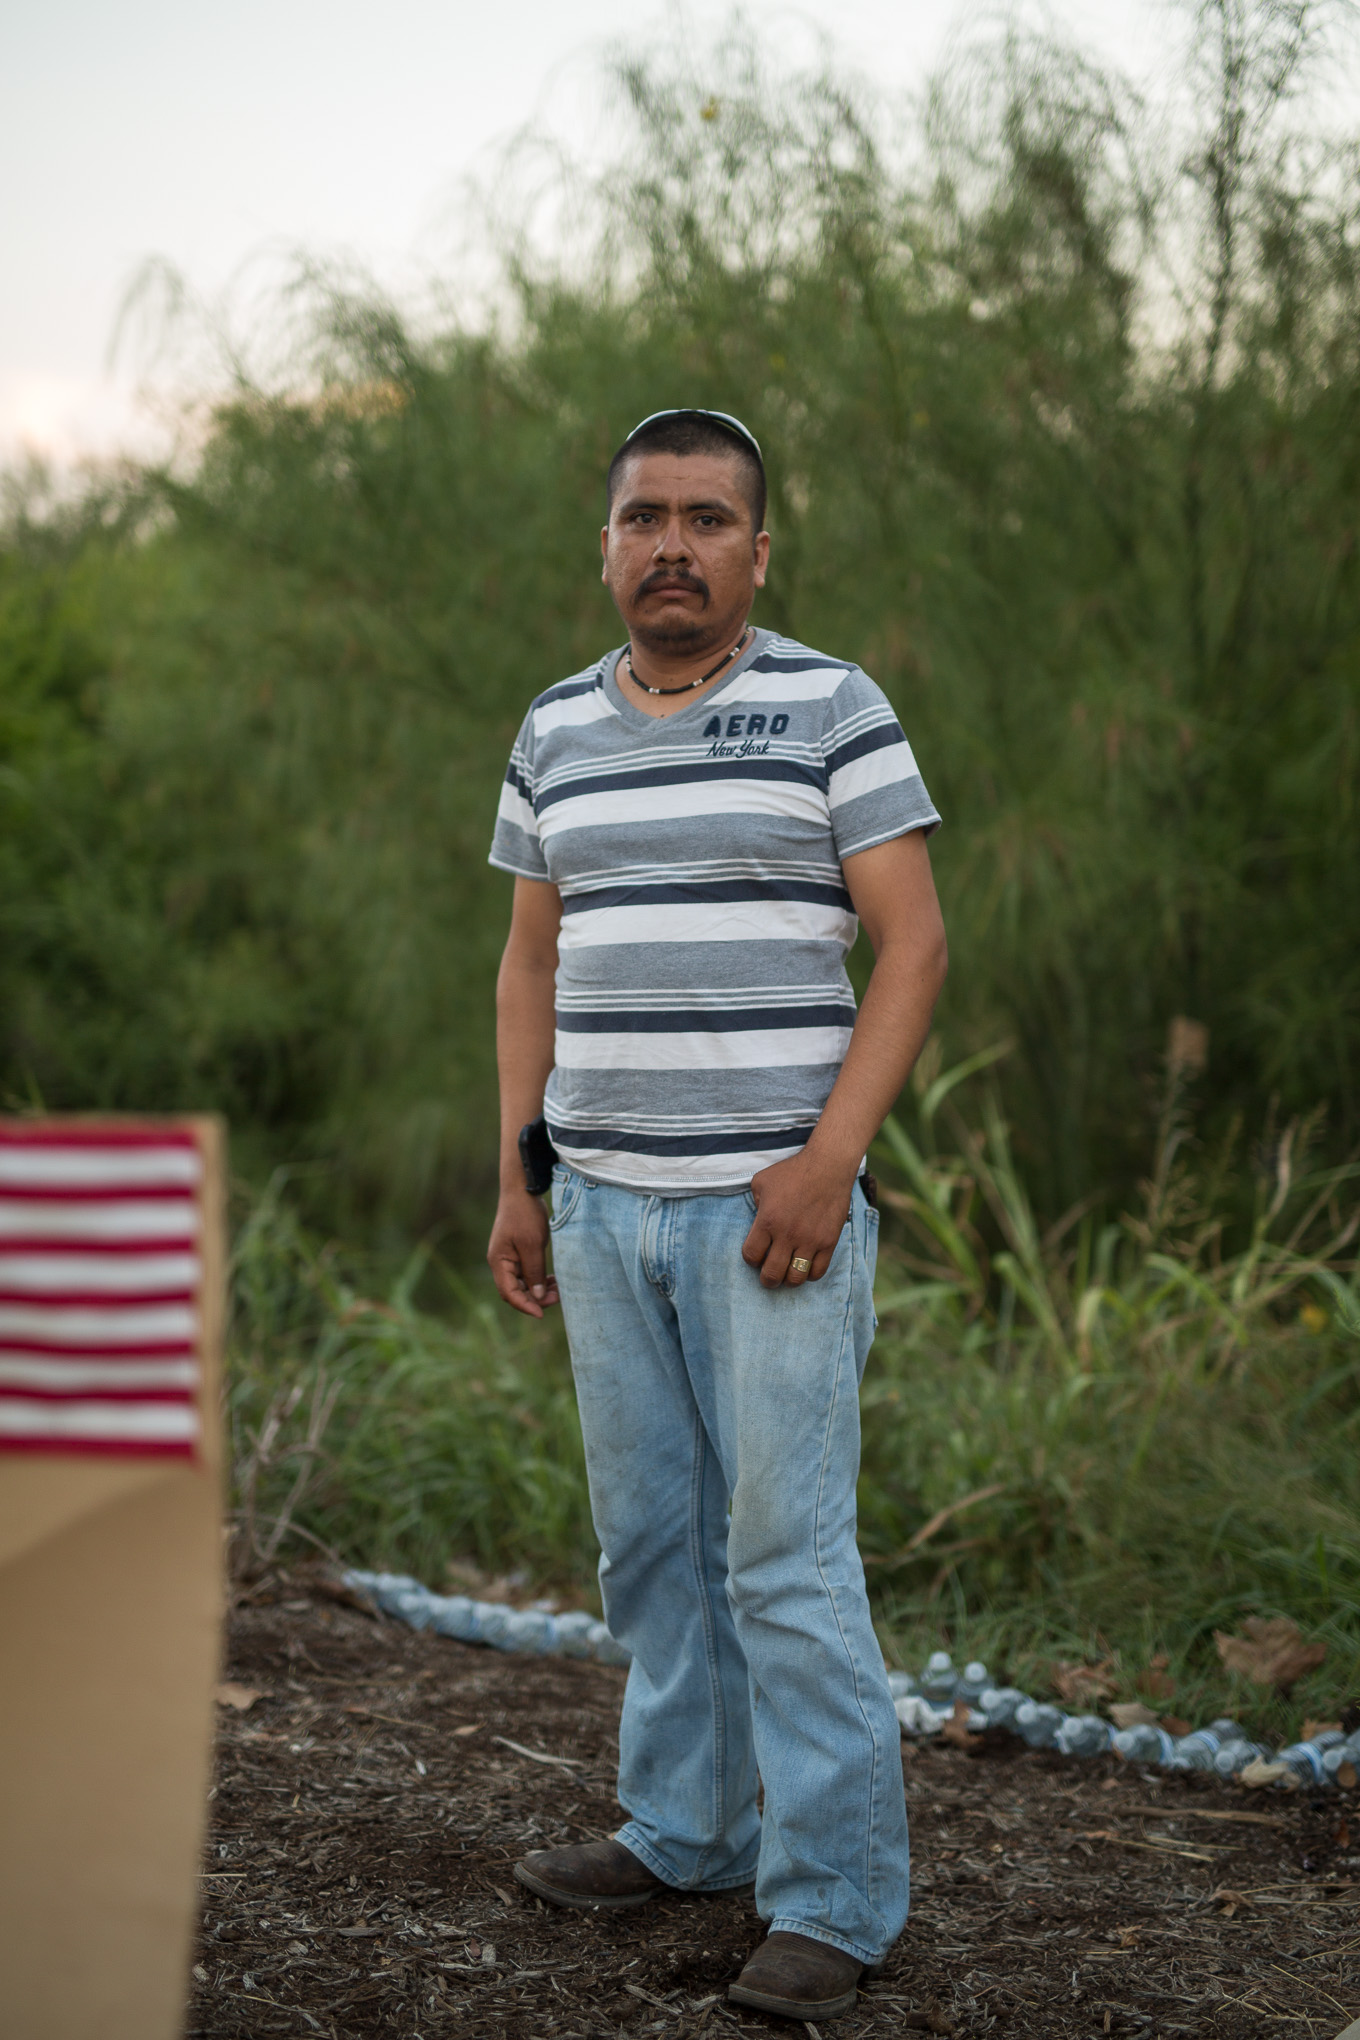 Reynaldo Ramos first came to the United States when he was 15 years old.